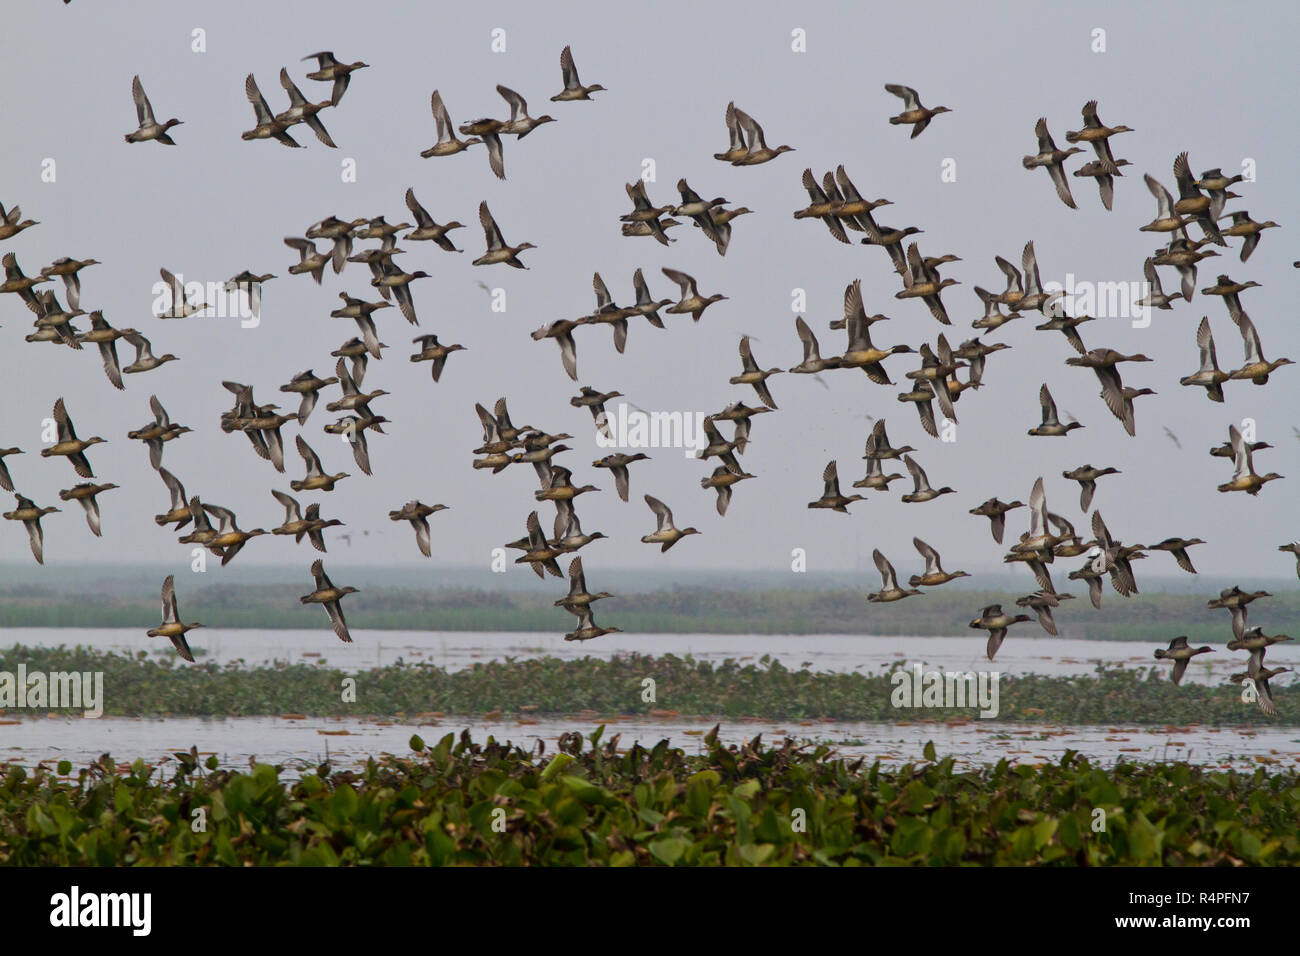 Flock of migratory birds at Baikka Beel Sanctuary. It is a wildlife sanctuary in the Hail Haor wetlands near Srimangal. Moulvibazar, Bangladesh. - Stock Image